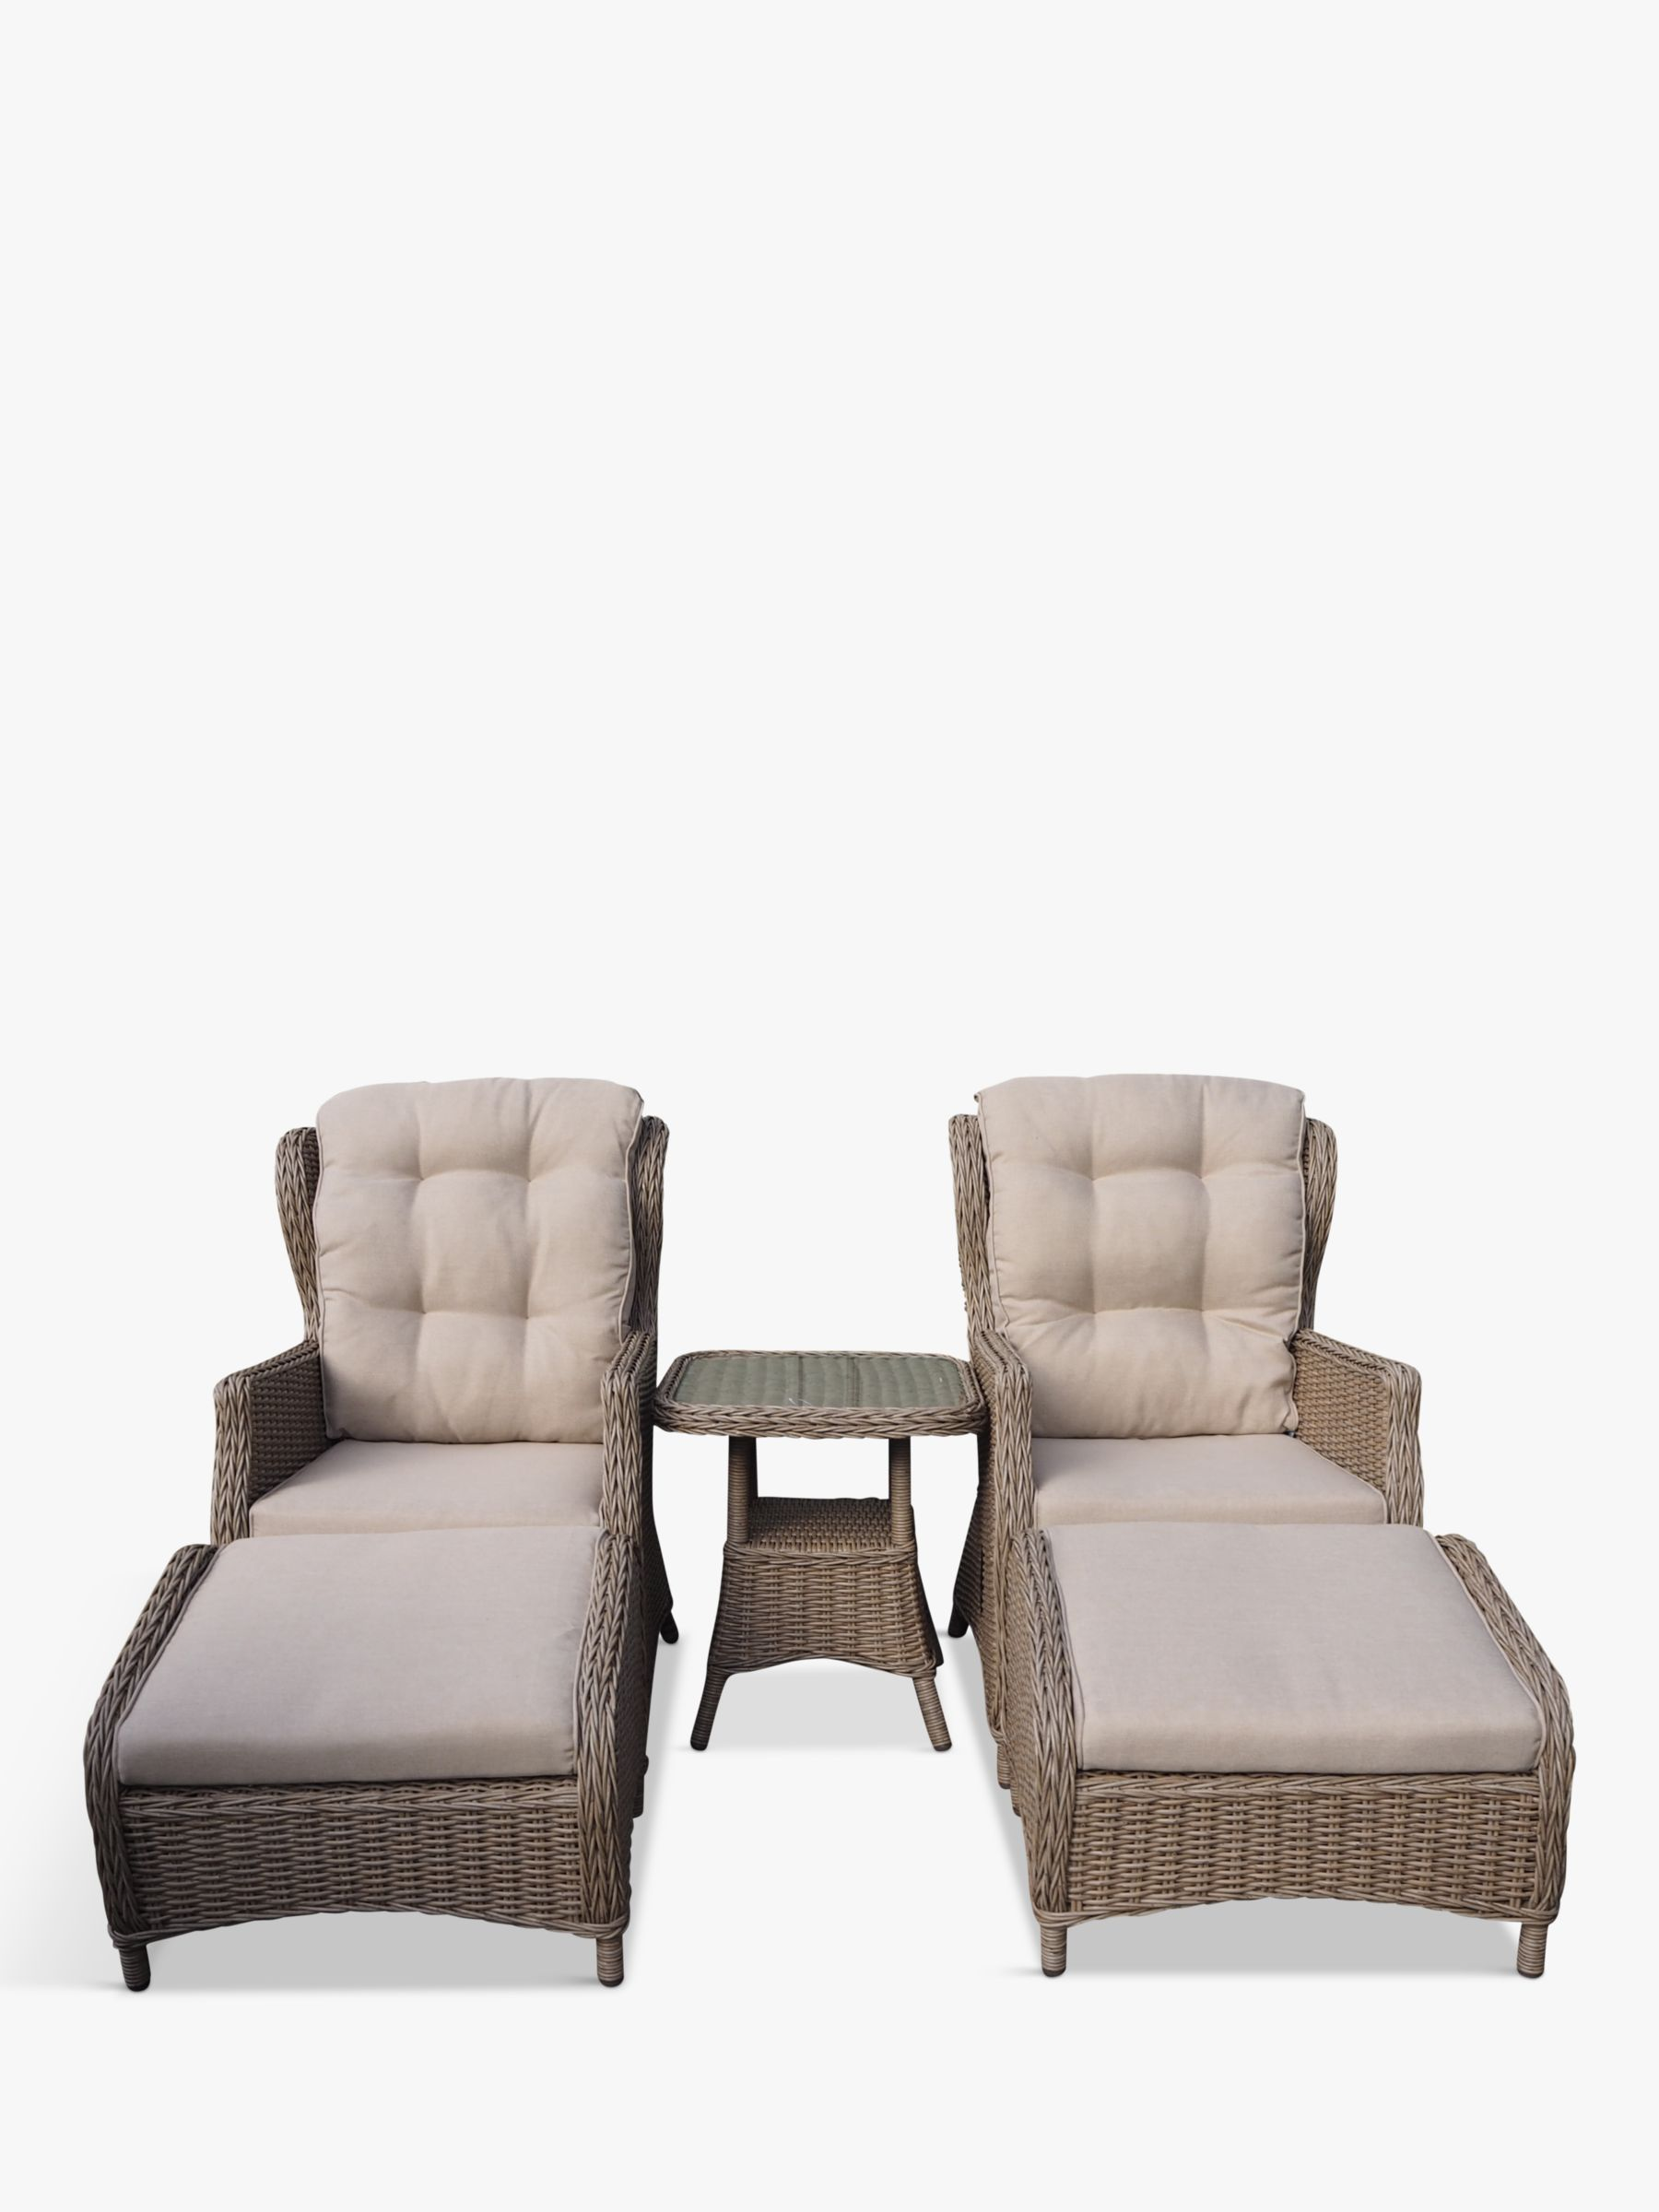 LG Outdoor LG Outdoor Saigon 2 Seat Garden Relaxer Table & Chairs Set, Natural